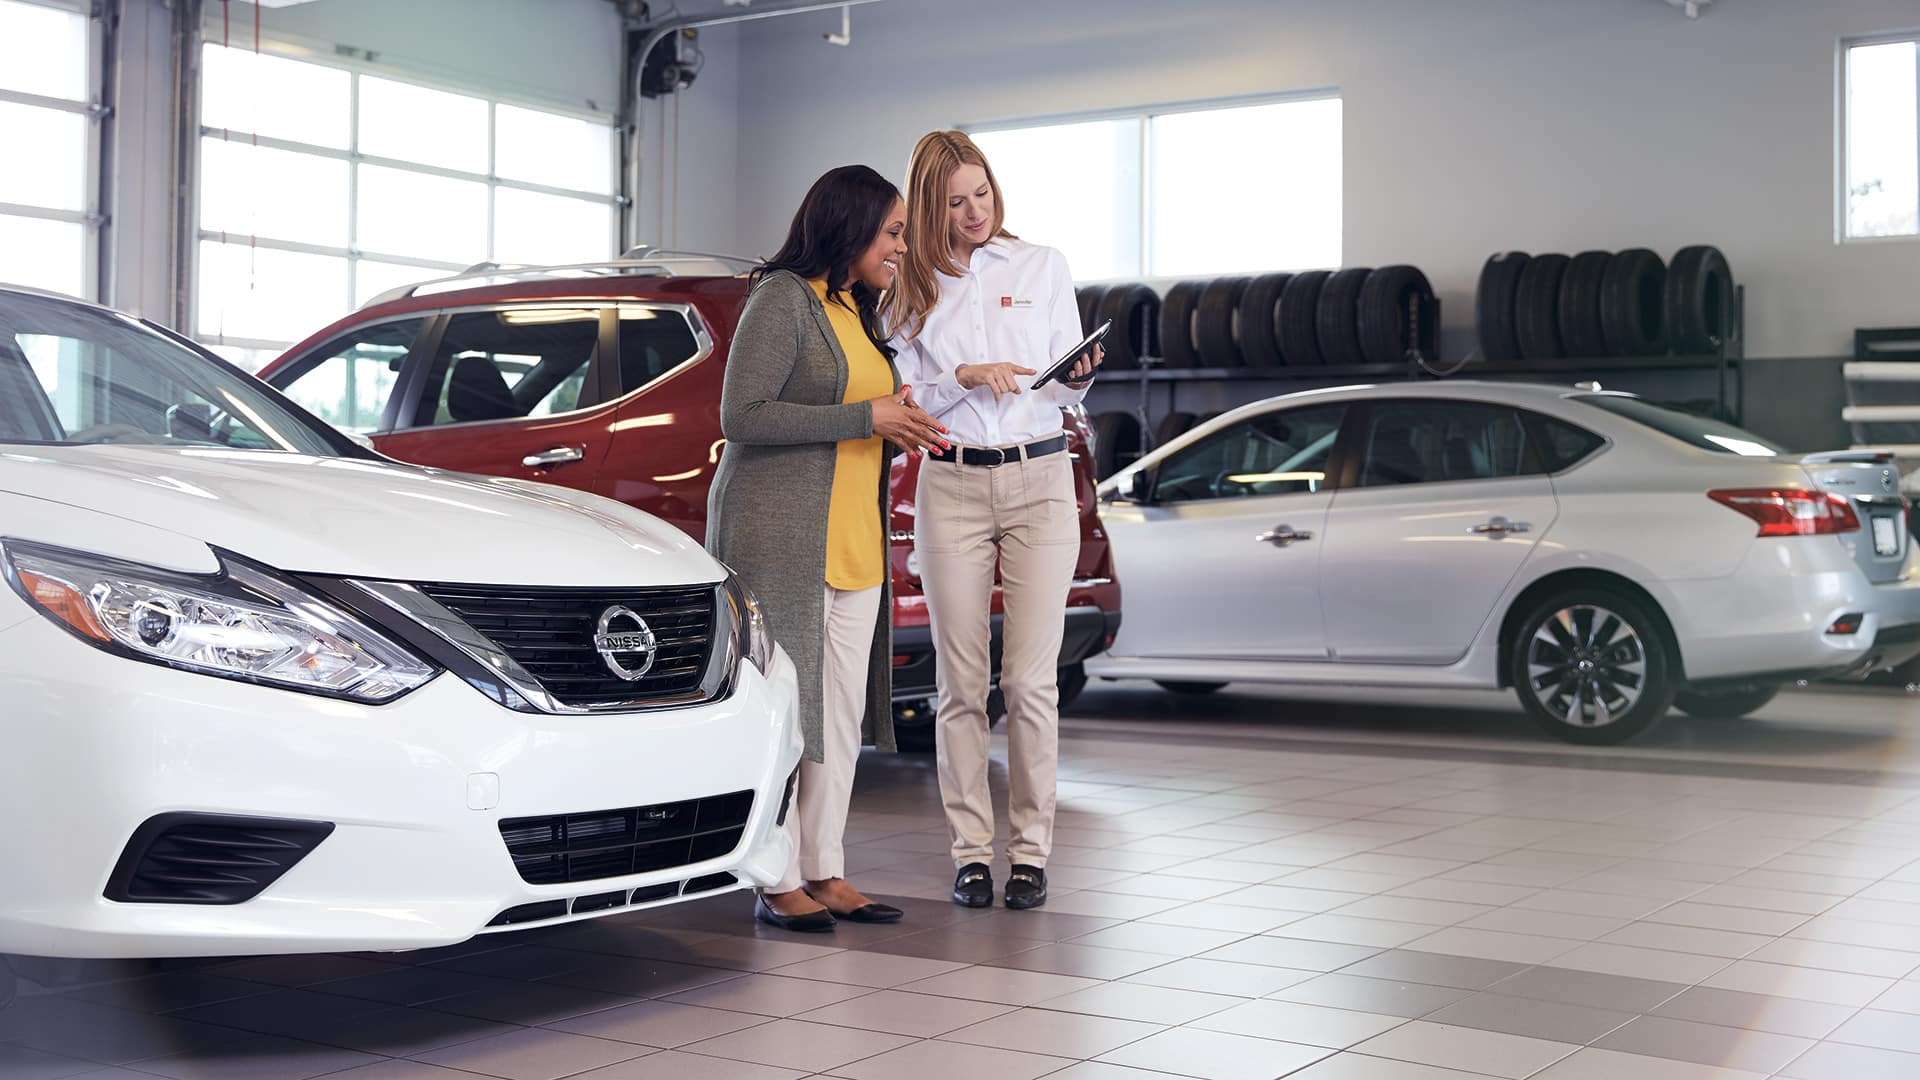 Hanover Nissan is a Car Dealership in Hanover PA near Hampstead MD | Service specialist helping woman while standing around Nissan cars